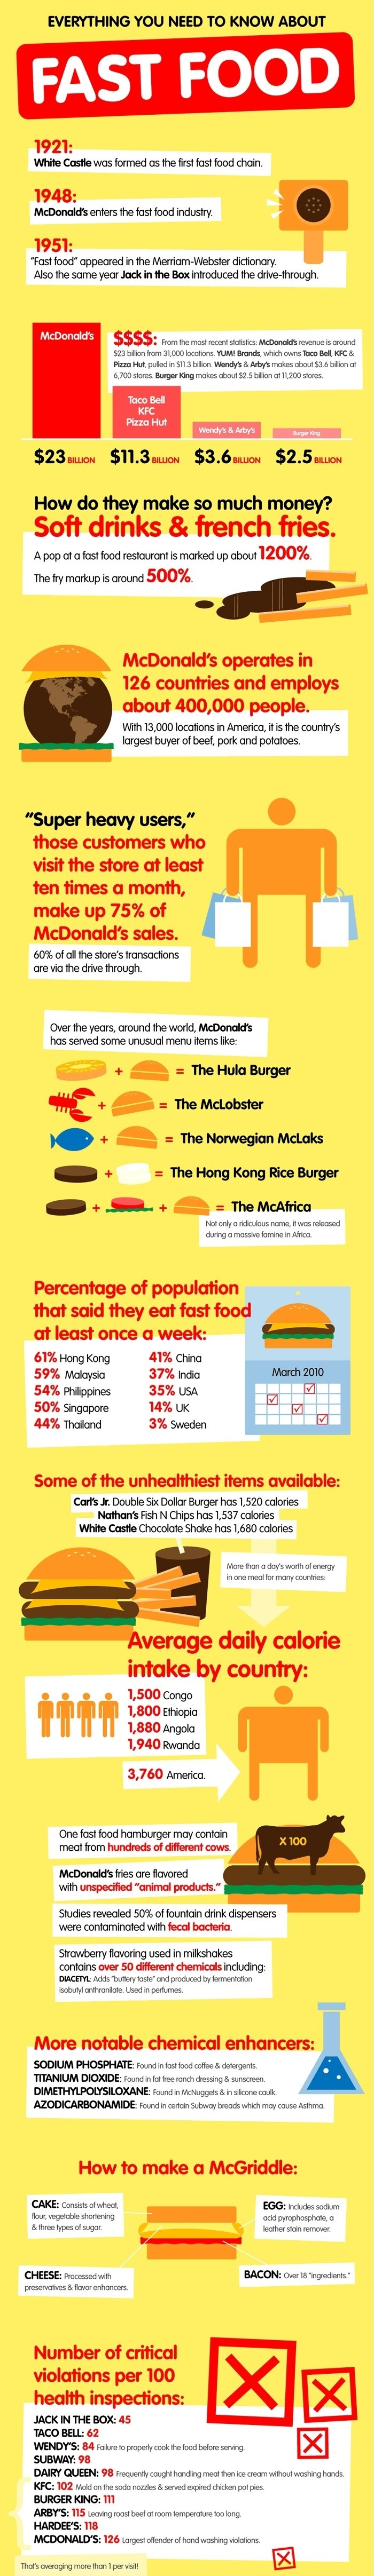 Fast Food Facts Infographic